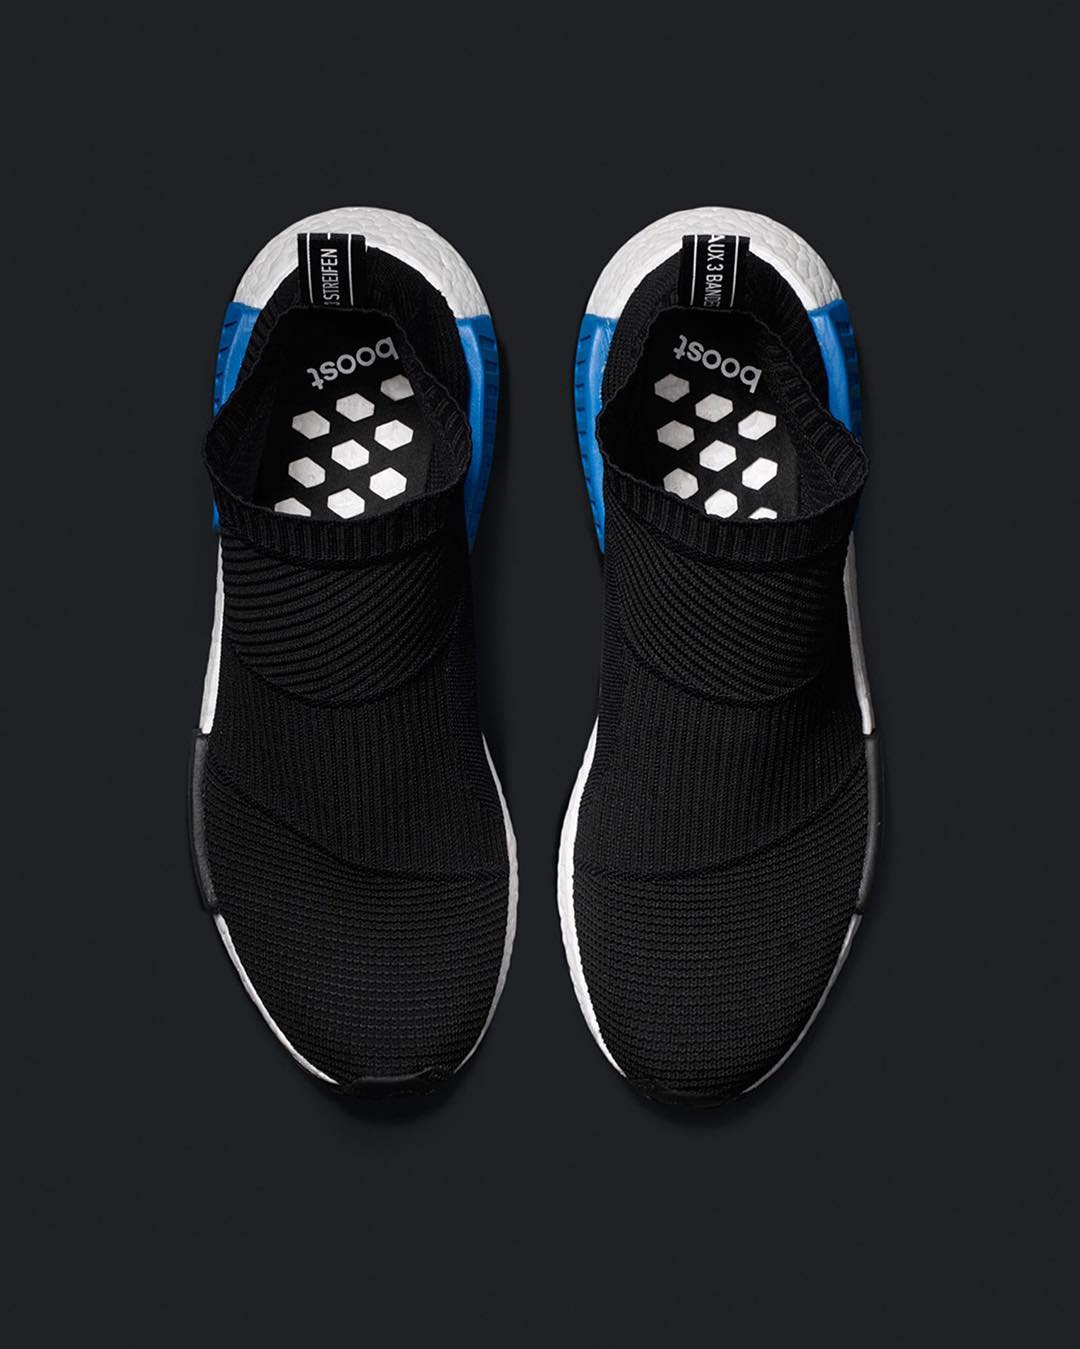 adidas-nmd-cs1-primeknit-black-blue-003